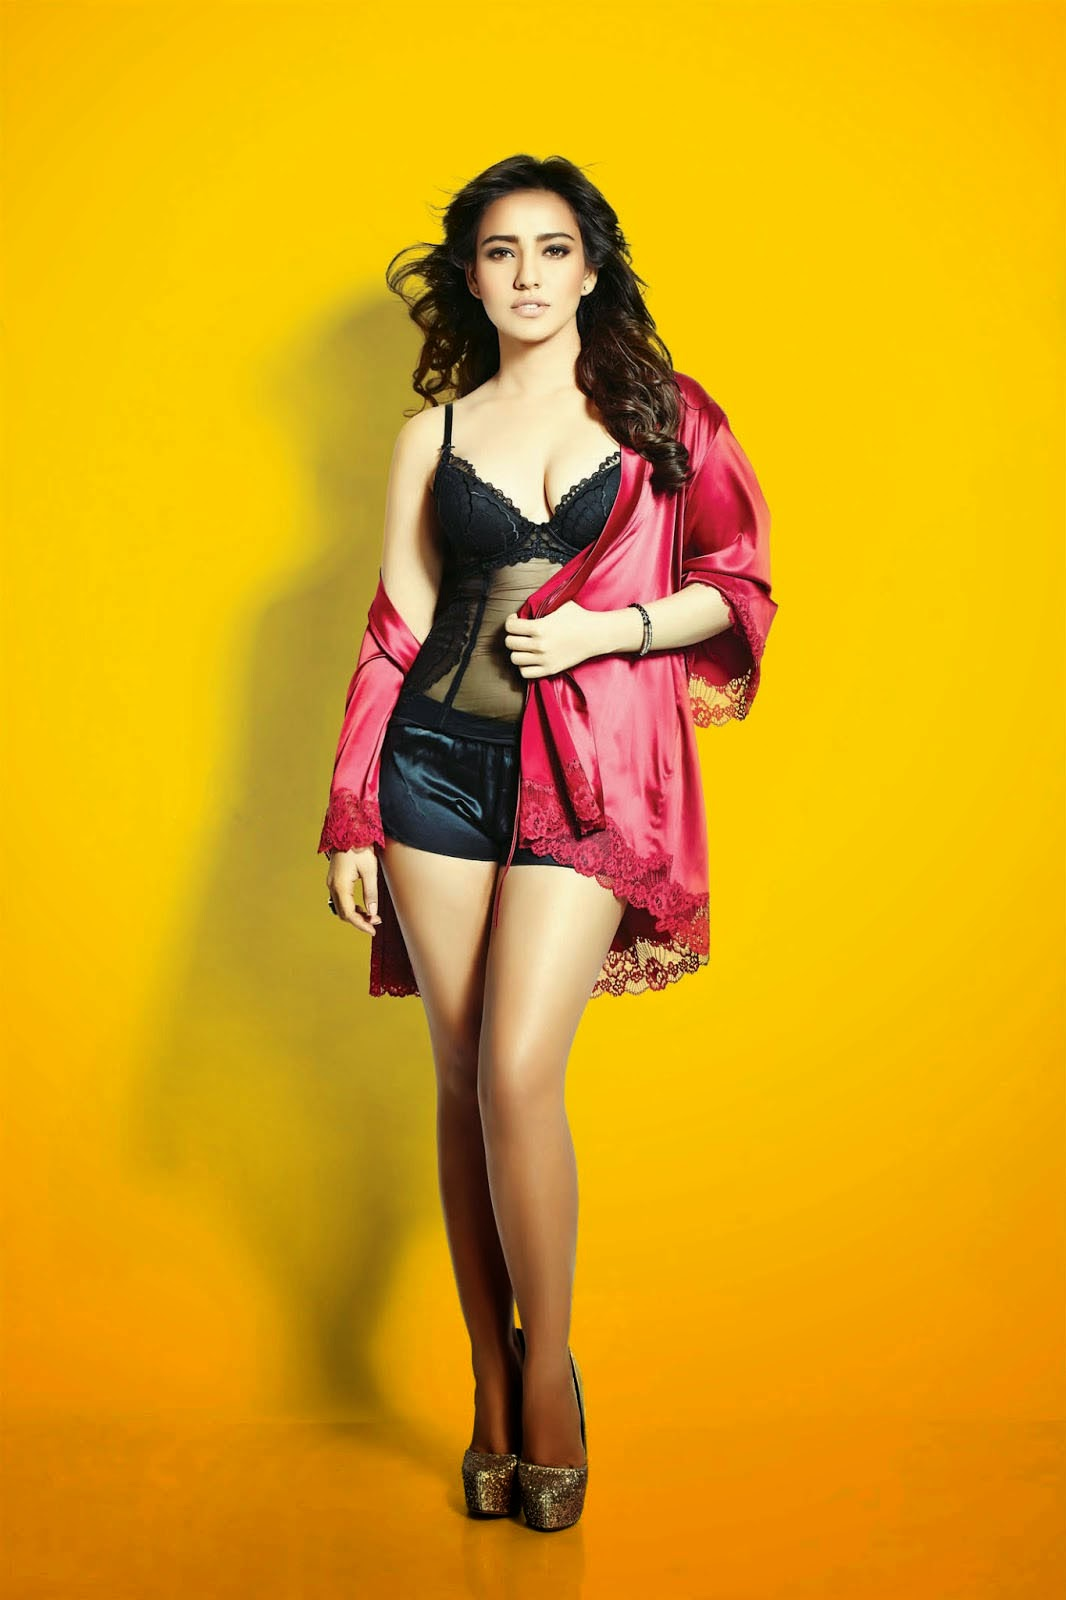 Neha-Sharma-in-FHM-India-magazine-2014-photo-shoot